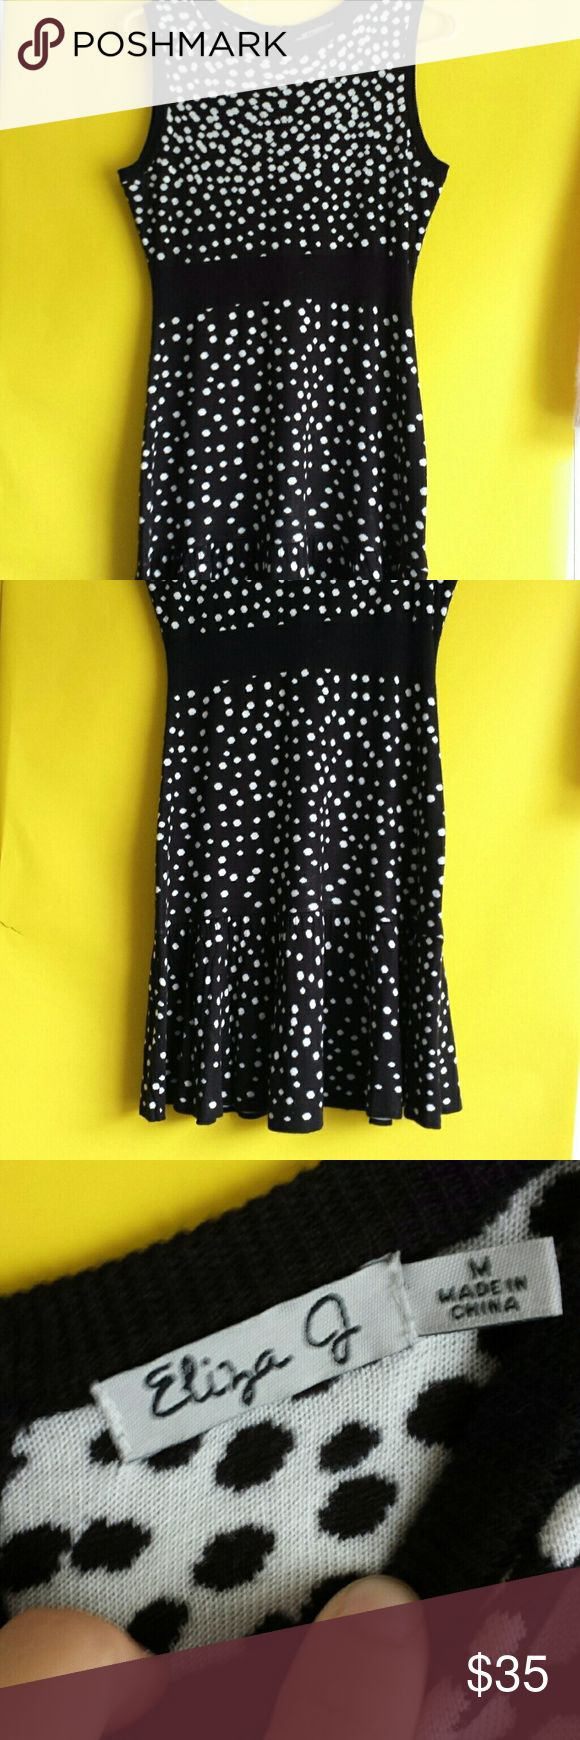 """Graphic Black & White Dot Knit Dress Size Medium Talk about cute & stylish with a timeless black and white print. This dress is 100% acrylic knit and a great piece for dressing up or down.  Has a great midweight to it.  Feminine detaiels like black band defining waist and subtle bottom kick pleats. Back zipper closure.  Size Medium,  18"""" with stretch, 36"""" long Eliza J Dresses Midi"""